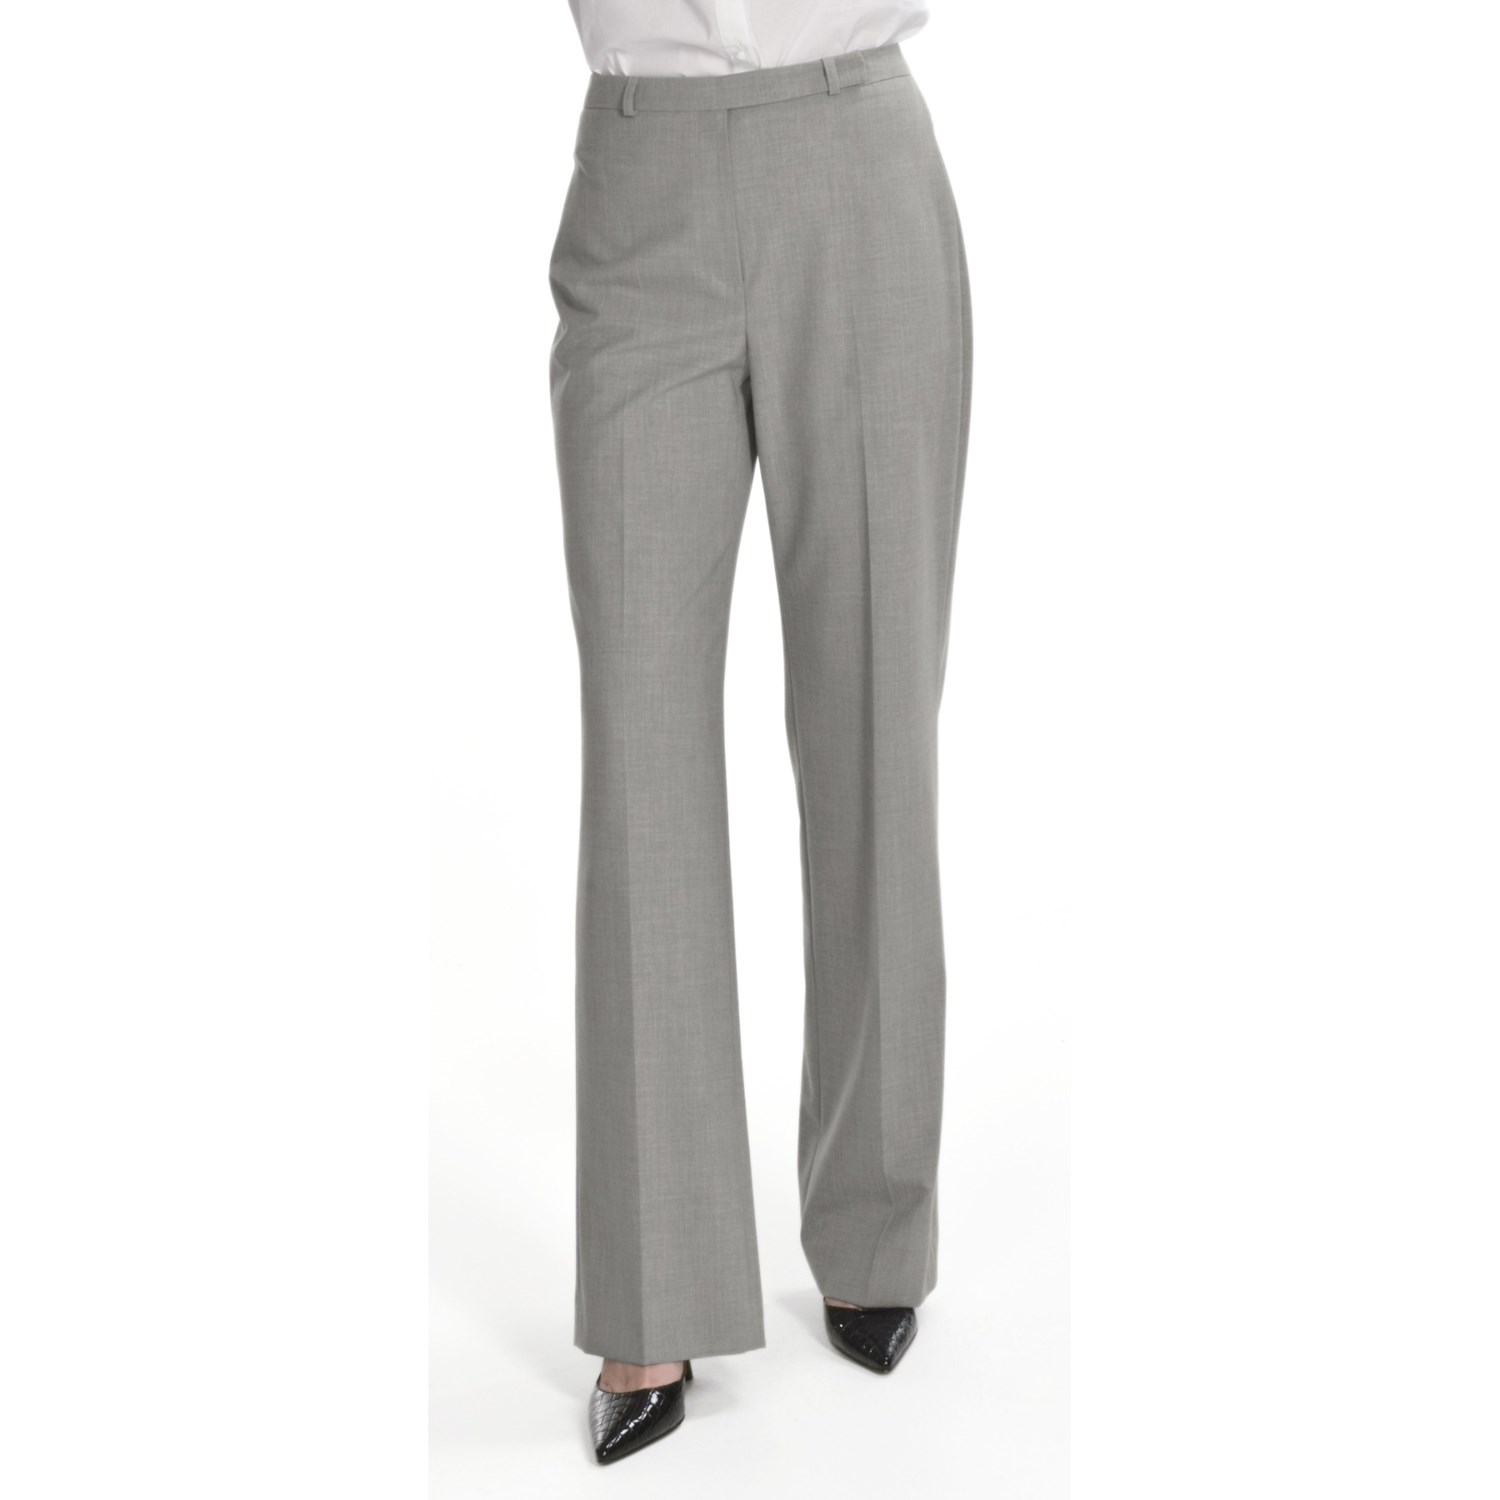 Fantastic A Dress  Pants Trend Is Just One Of The 90 Staples Thats Coming Back The Cut